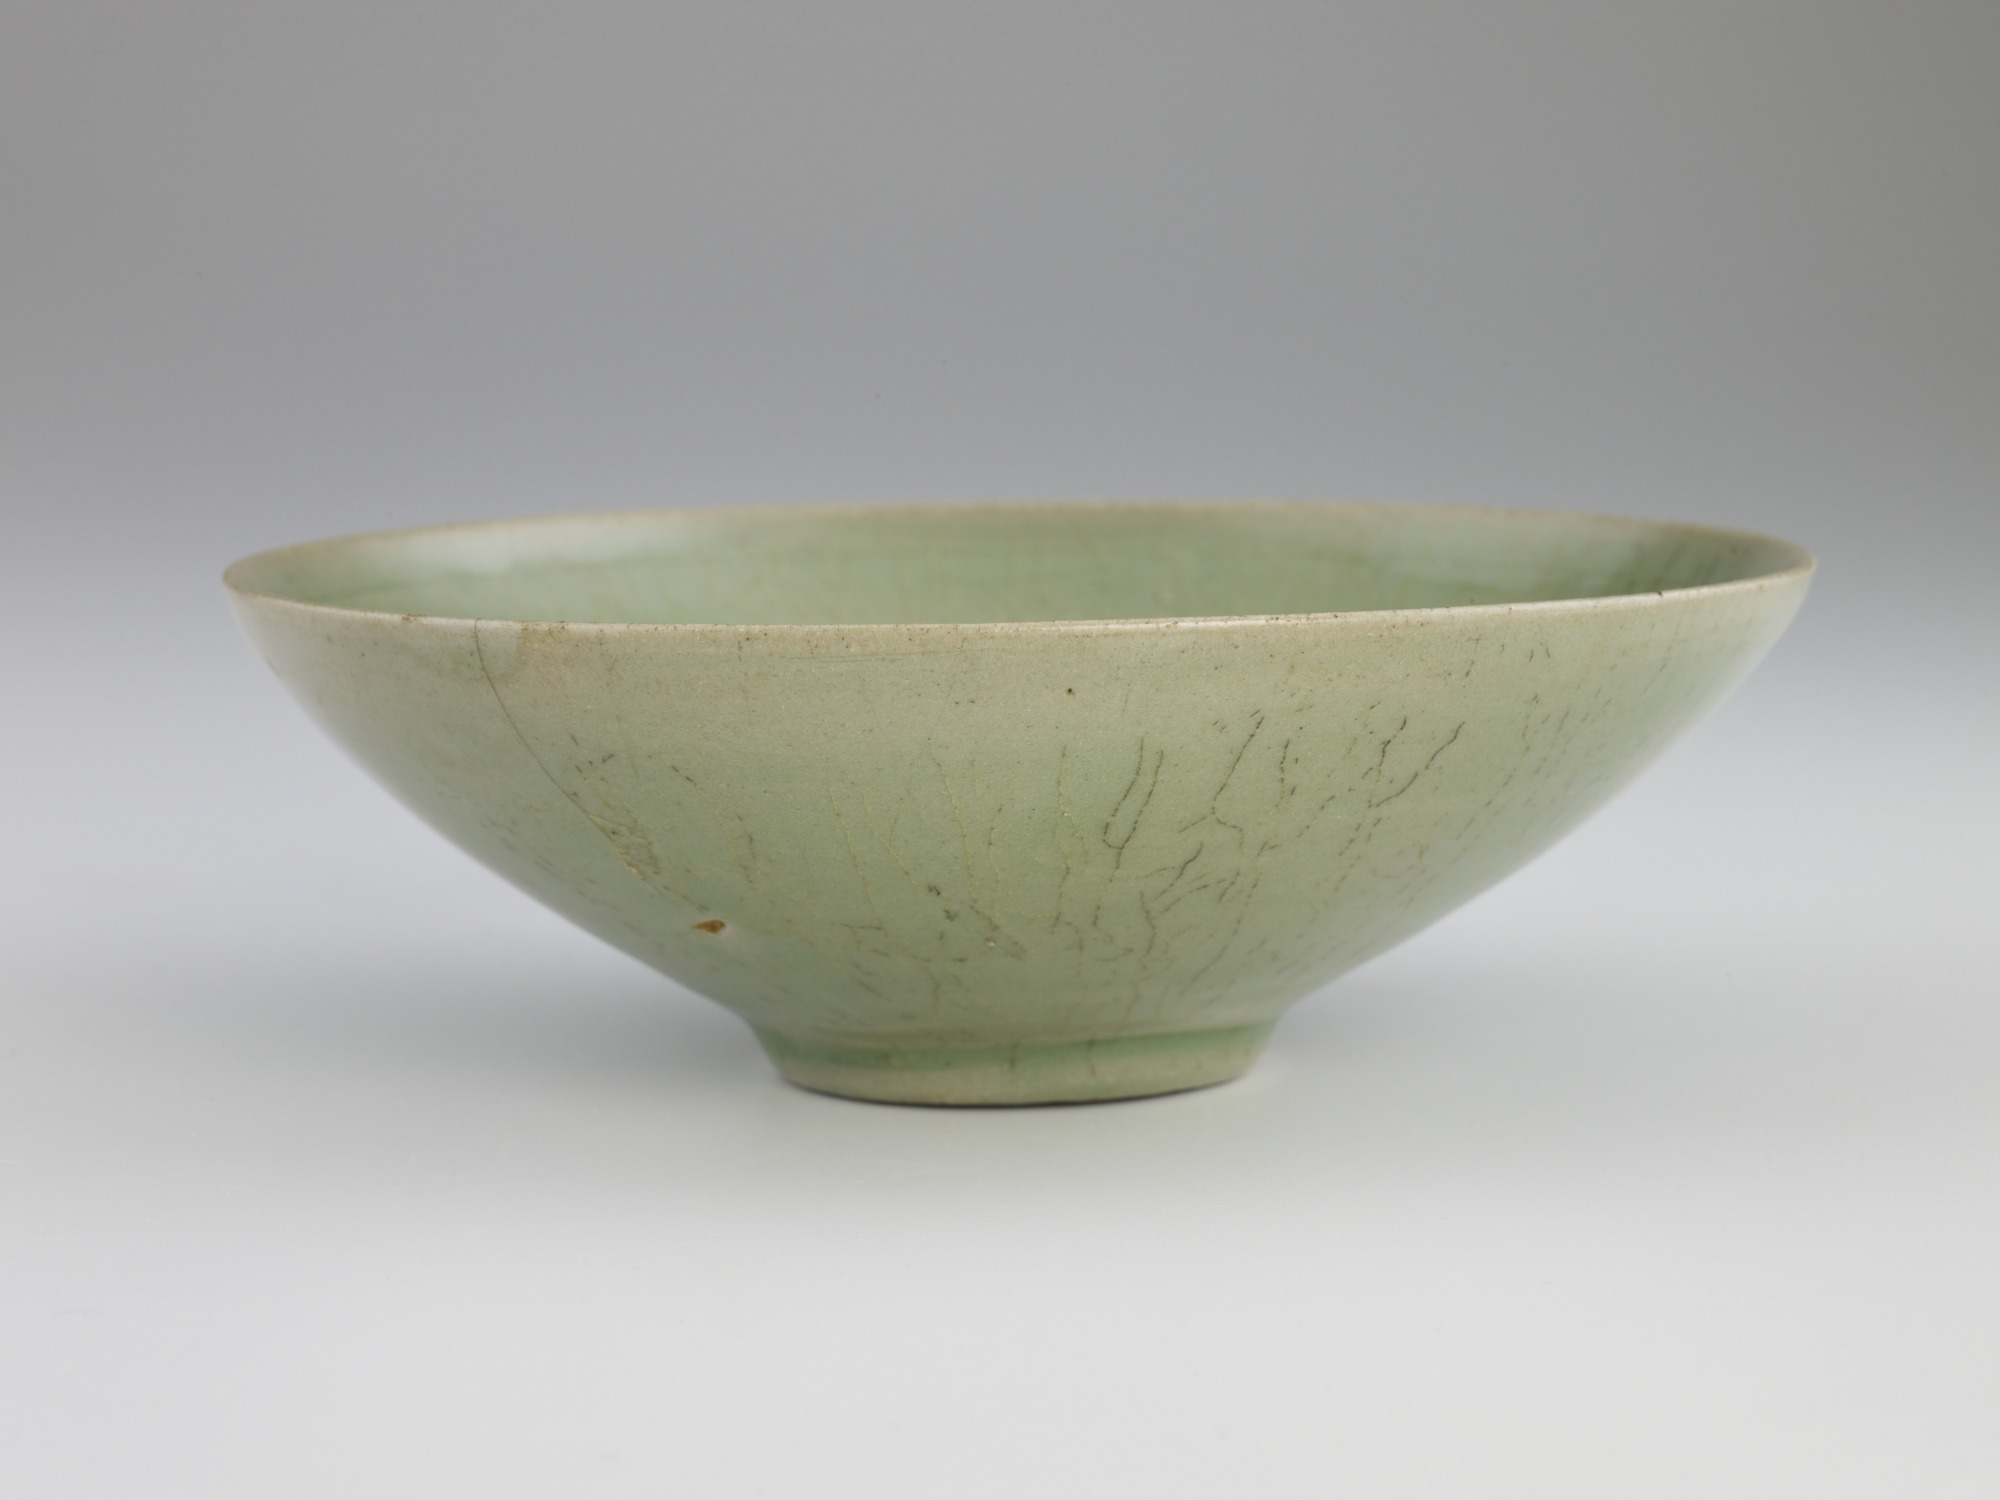 Bowl with incised design of fish among waves, profile